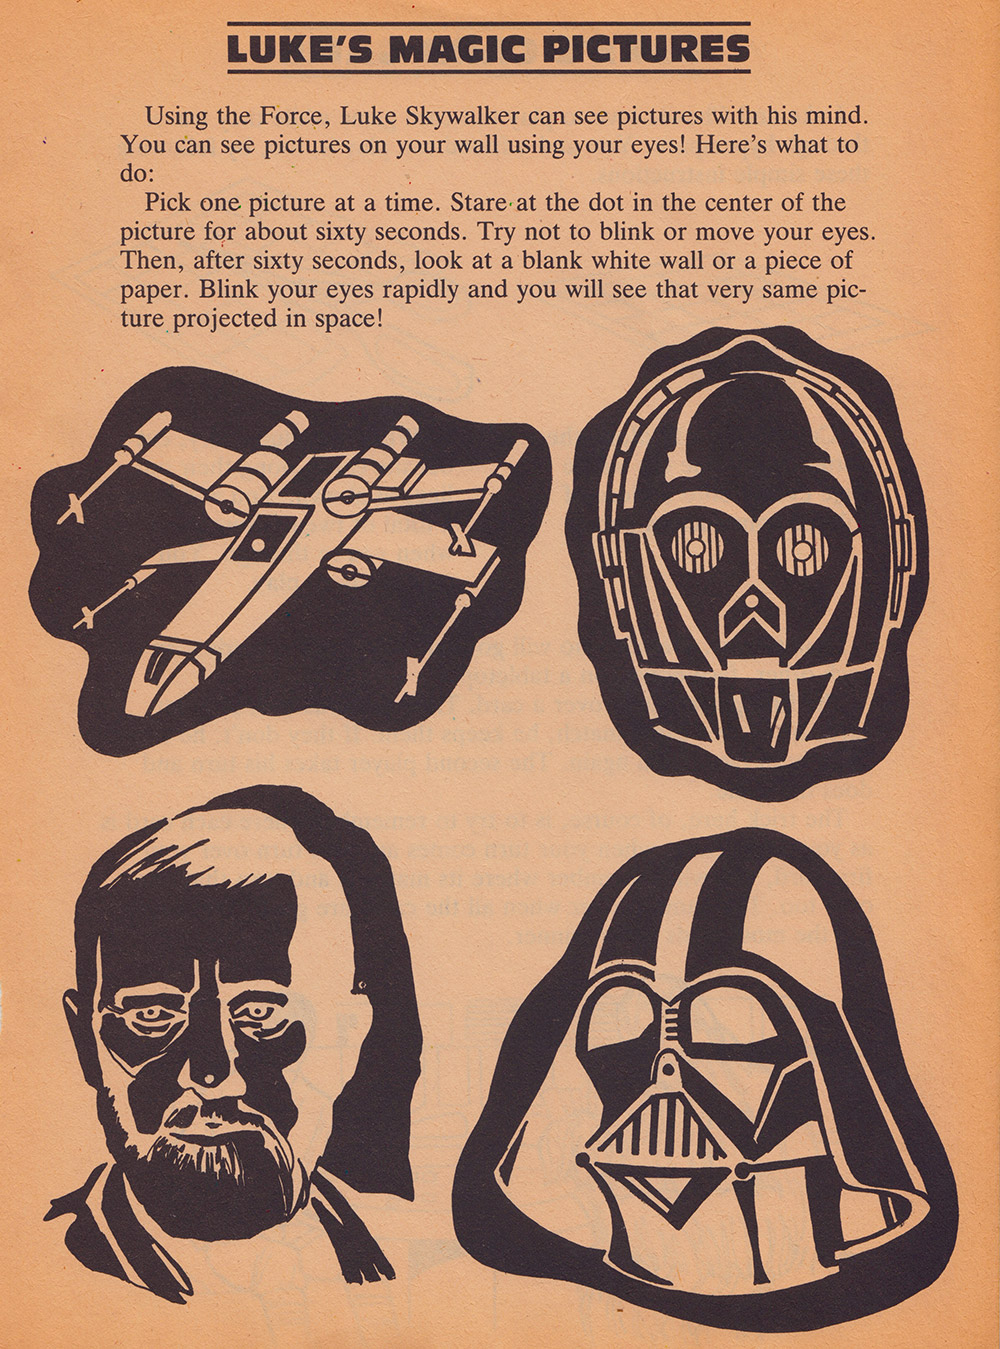 Return of the Jedi - Things to Do and Make Luke's Magic Pictures